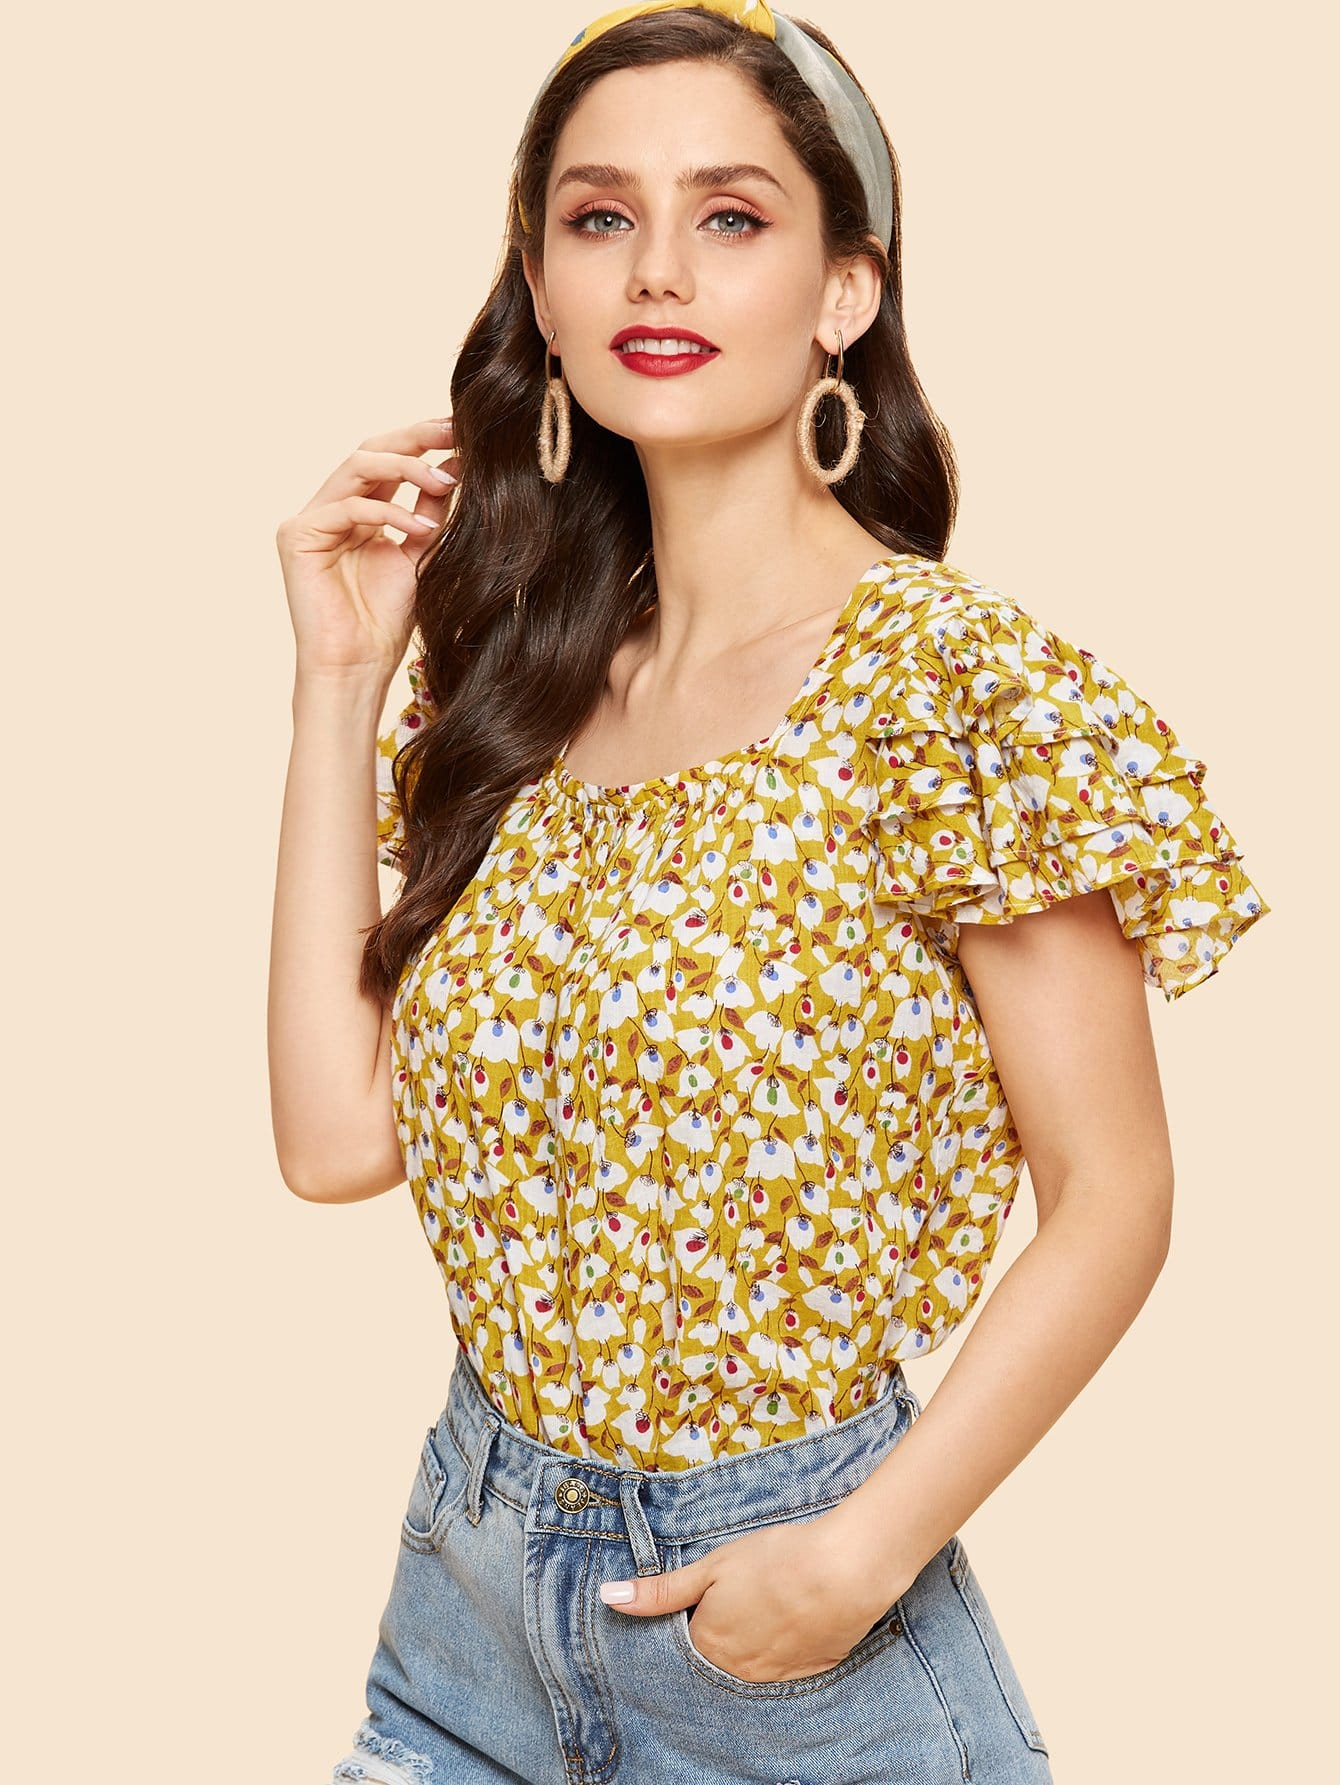 Layered Sleeve Floral Print Top layered sleeve floral top